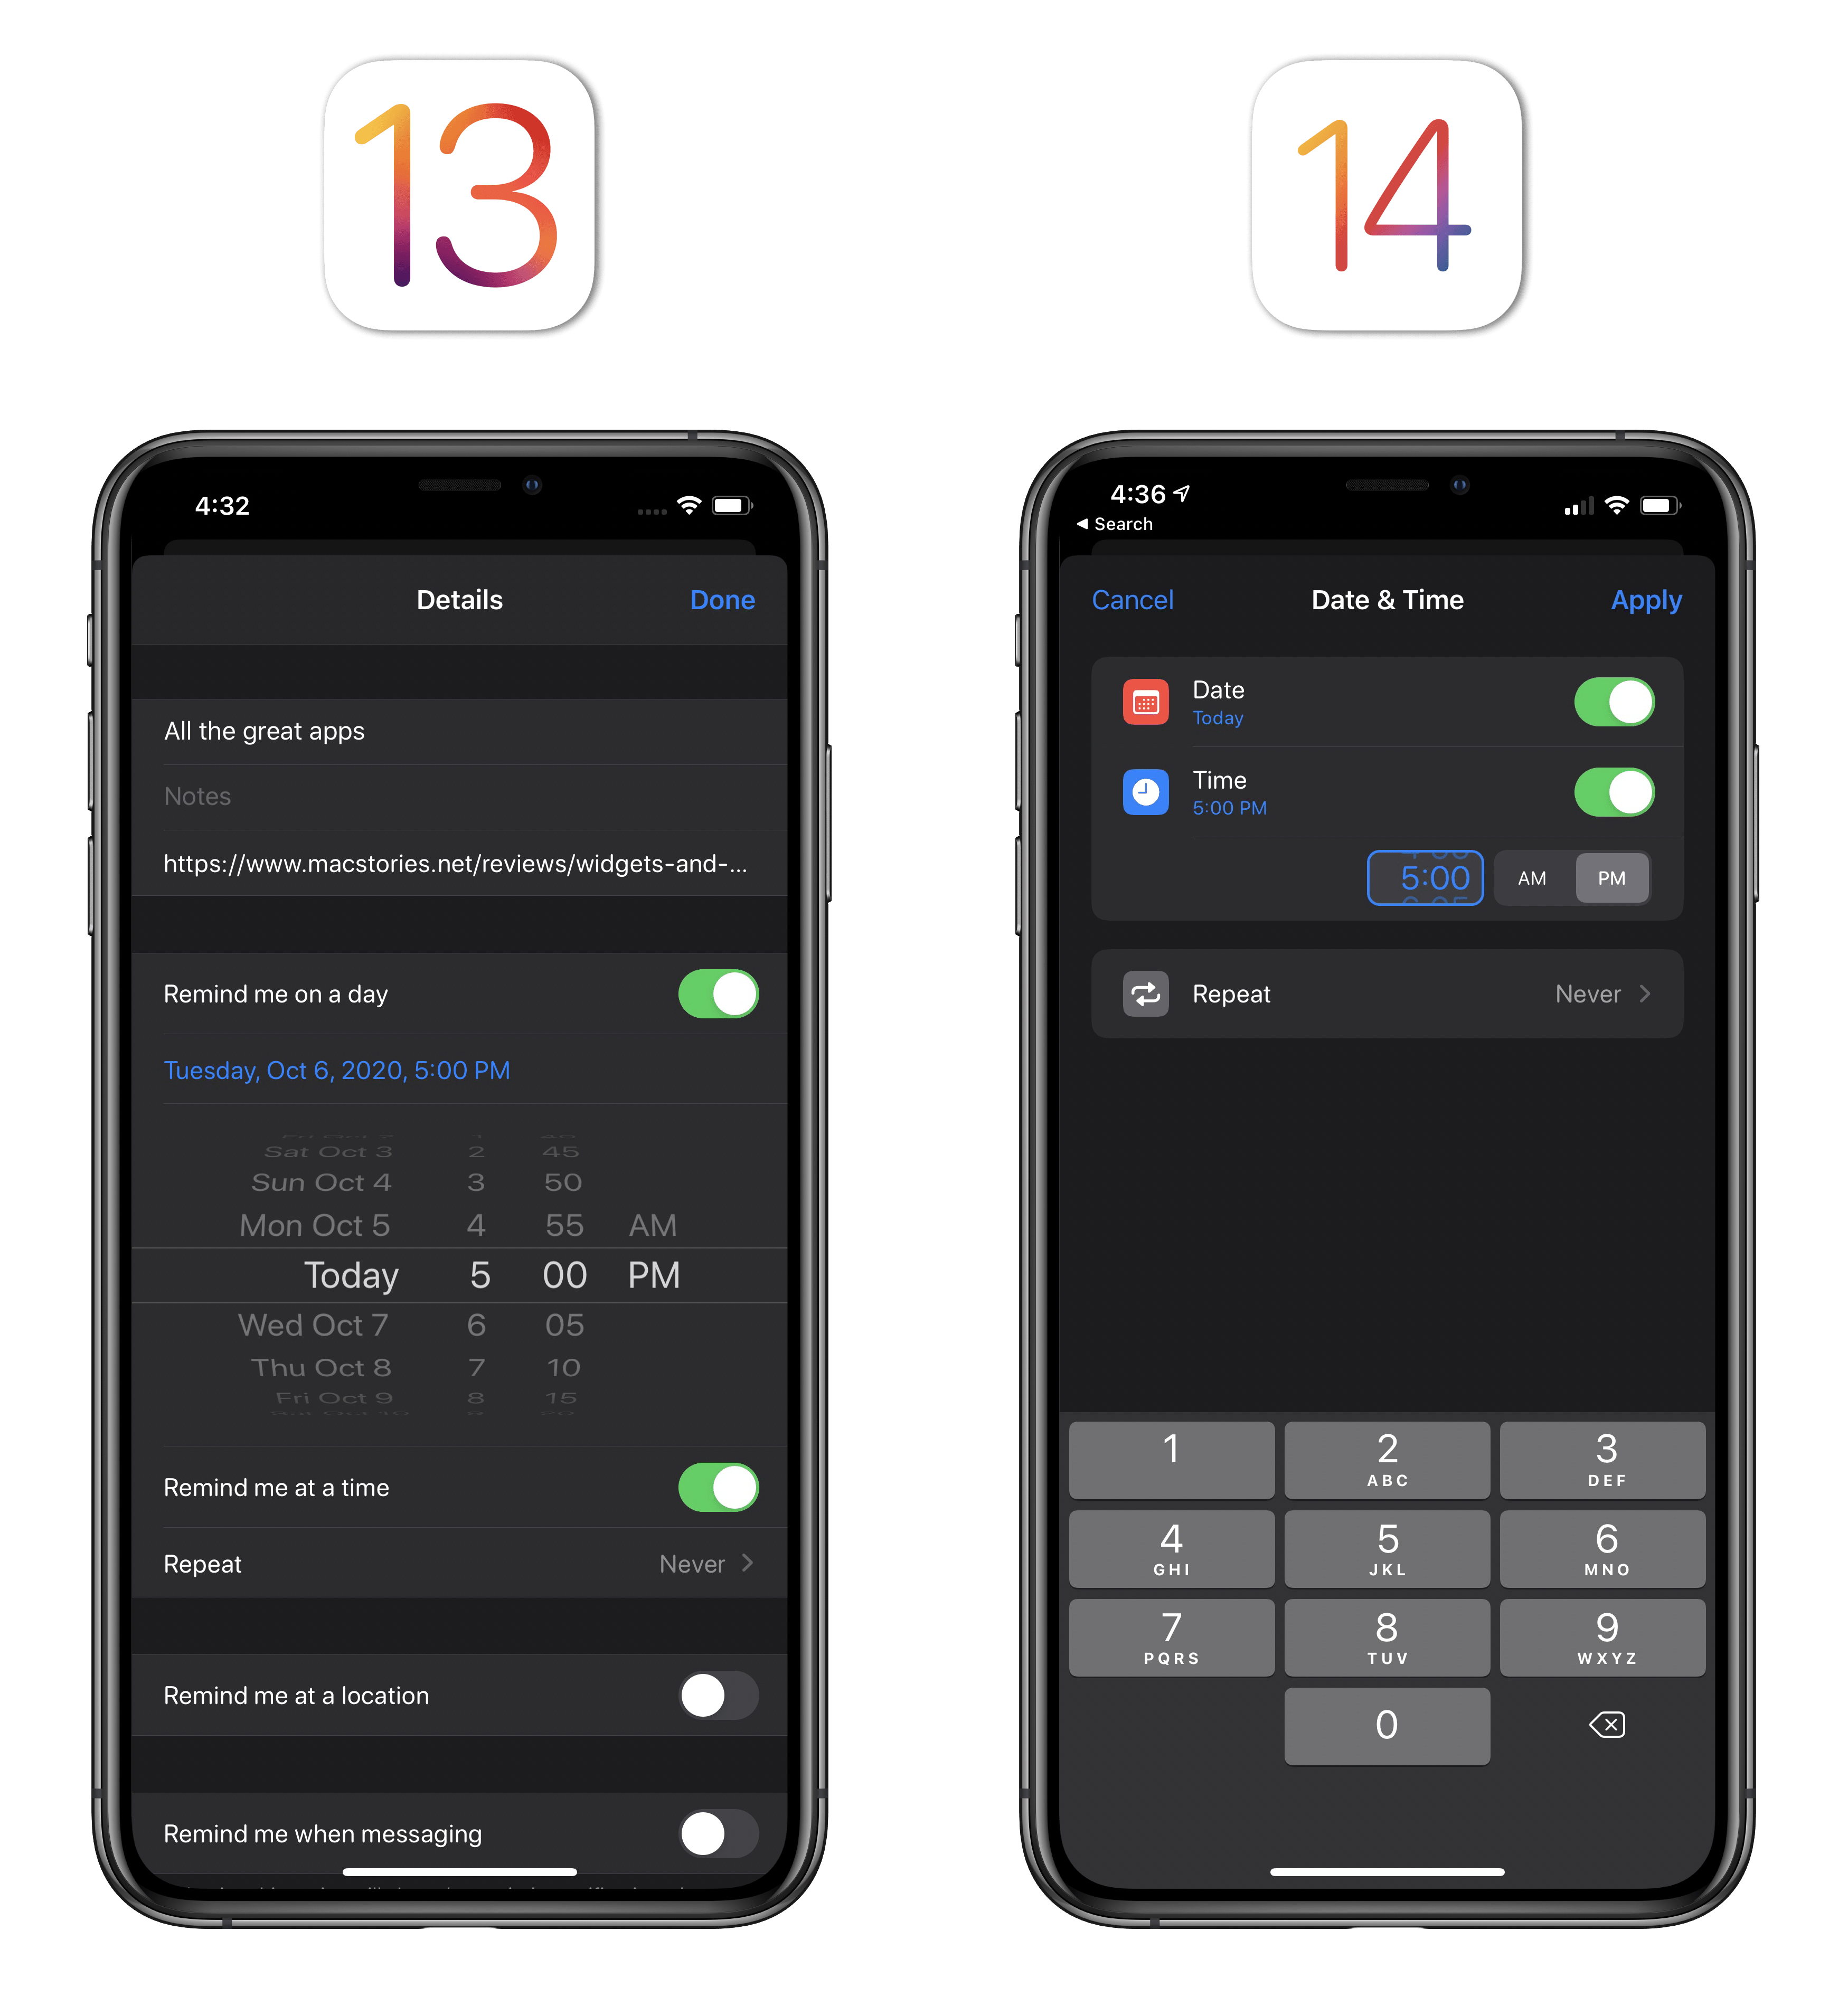 In iOS 14, you can enter times by typing them or scrolling the (much smaller) wheel.